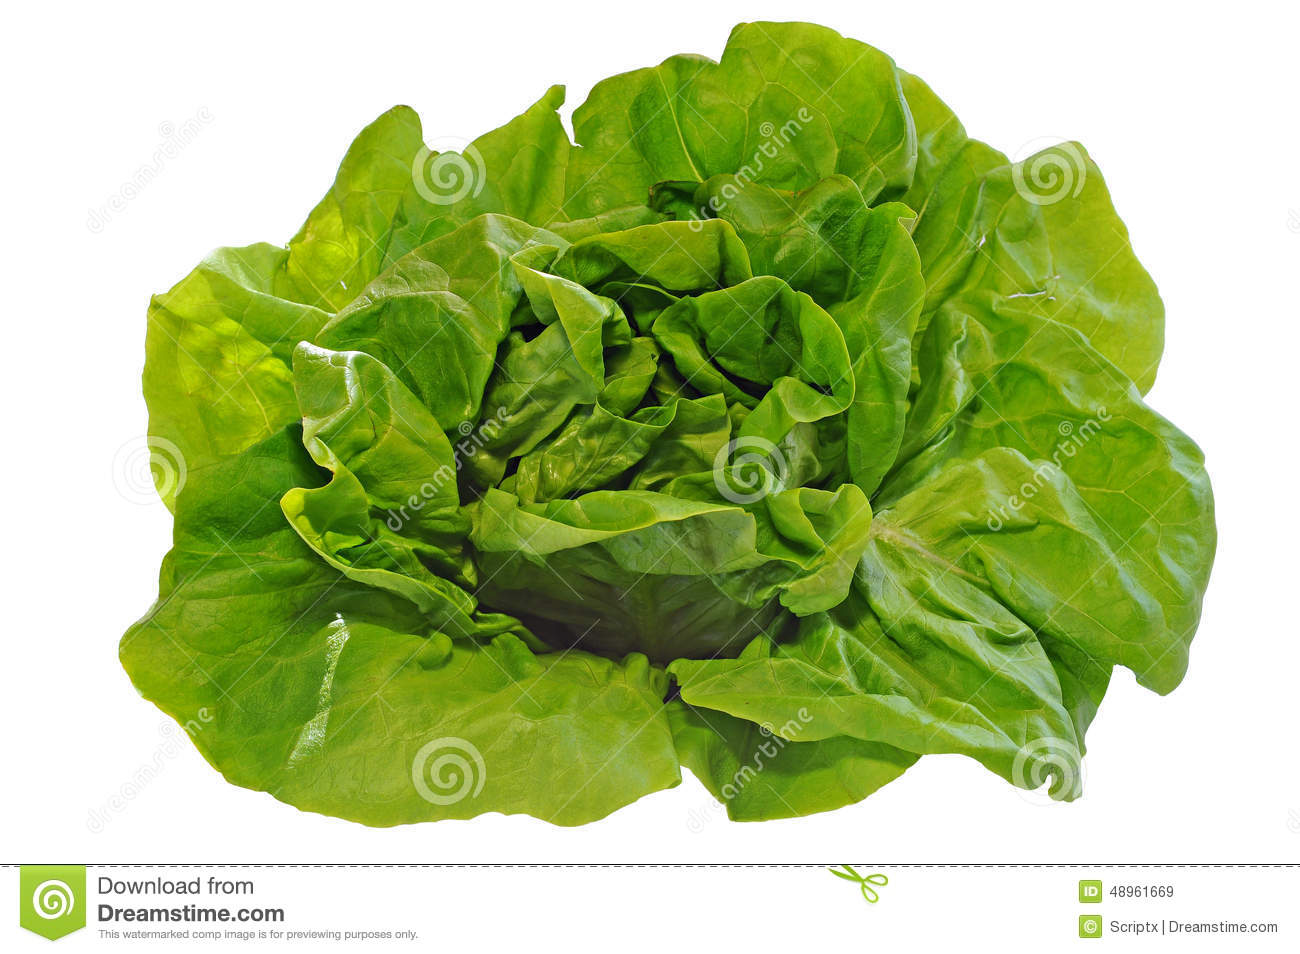 Green salad, isolated on white background